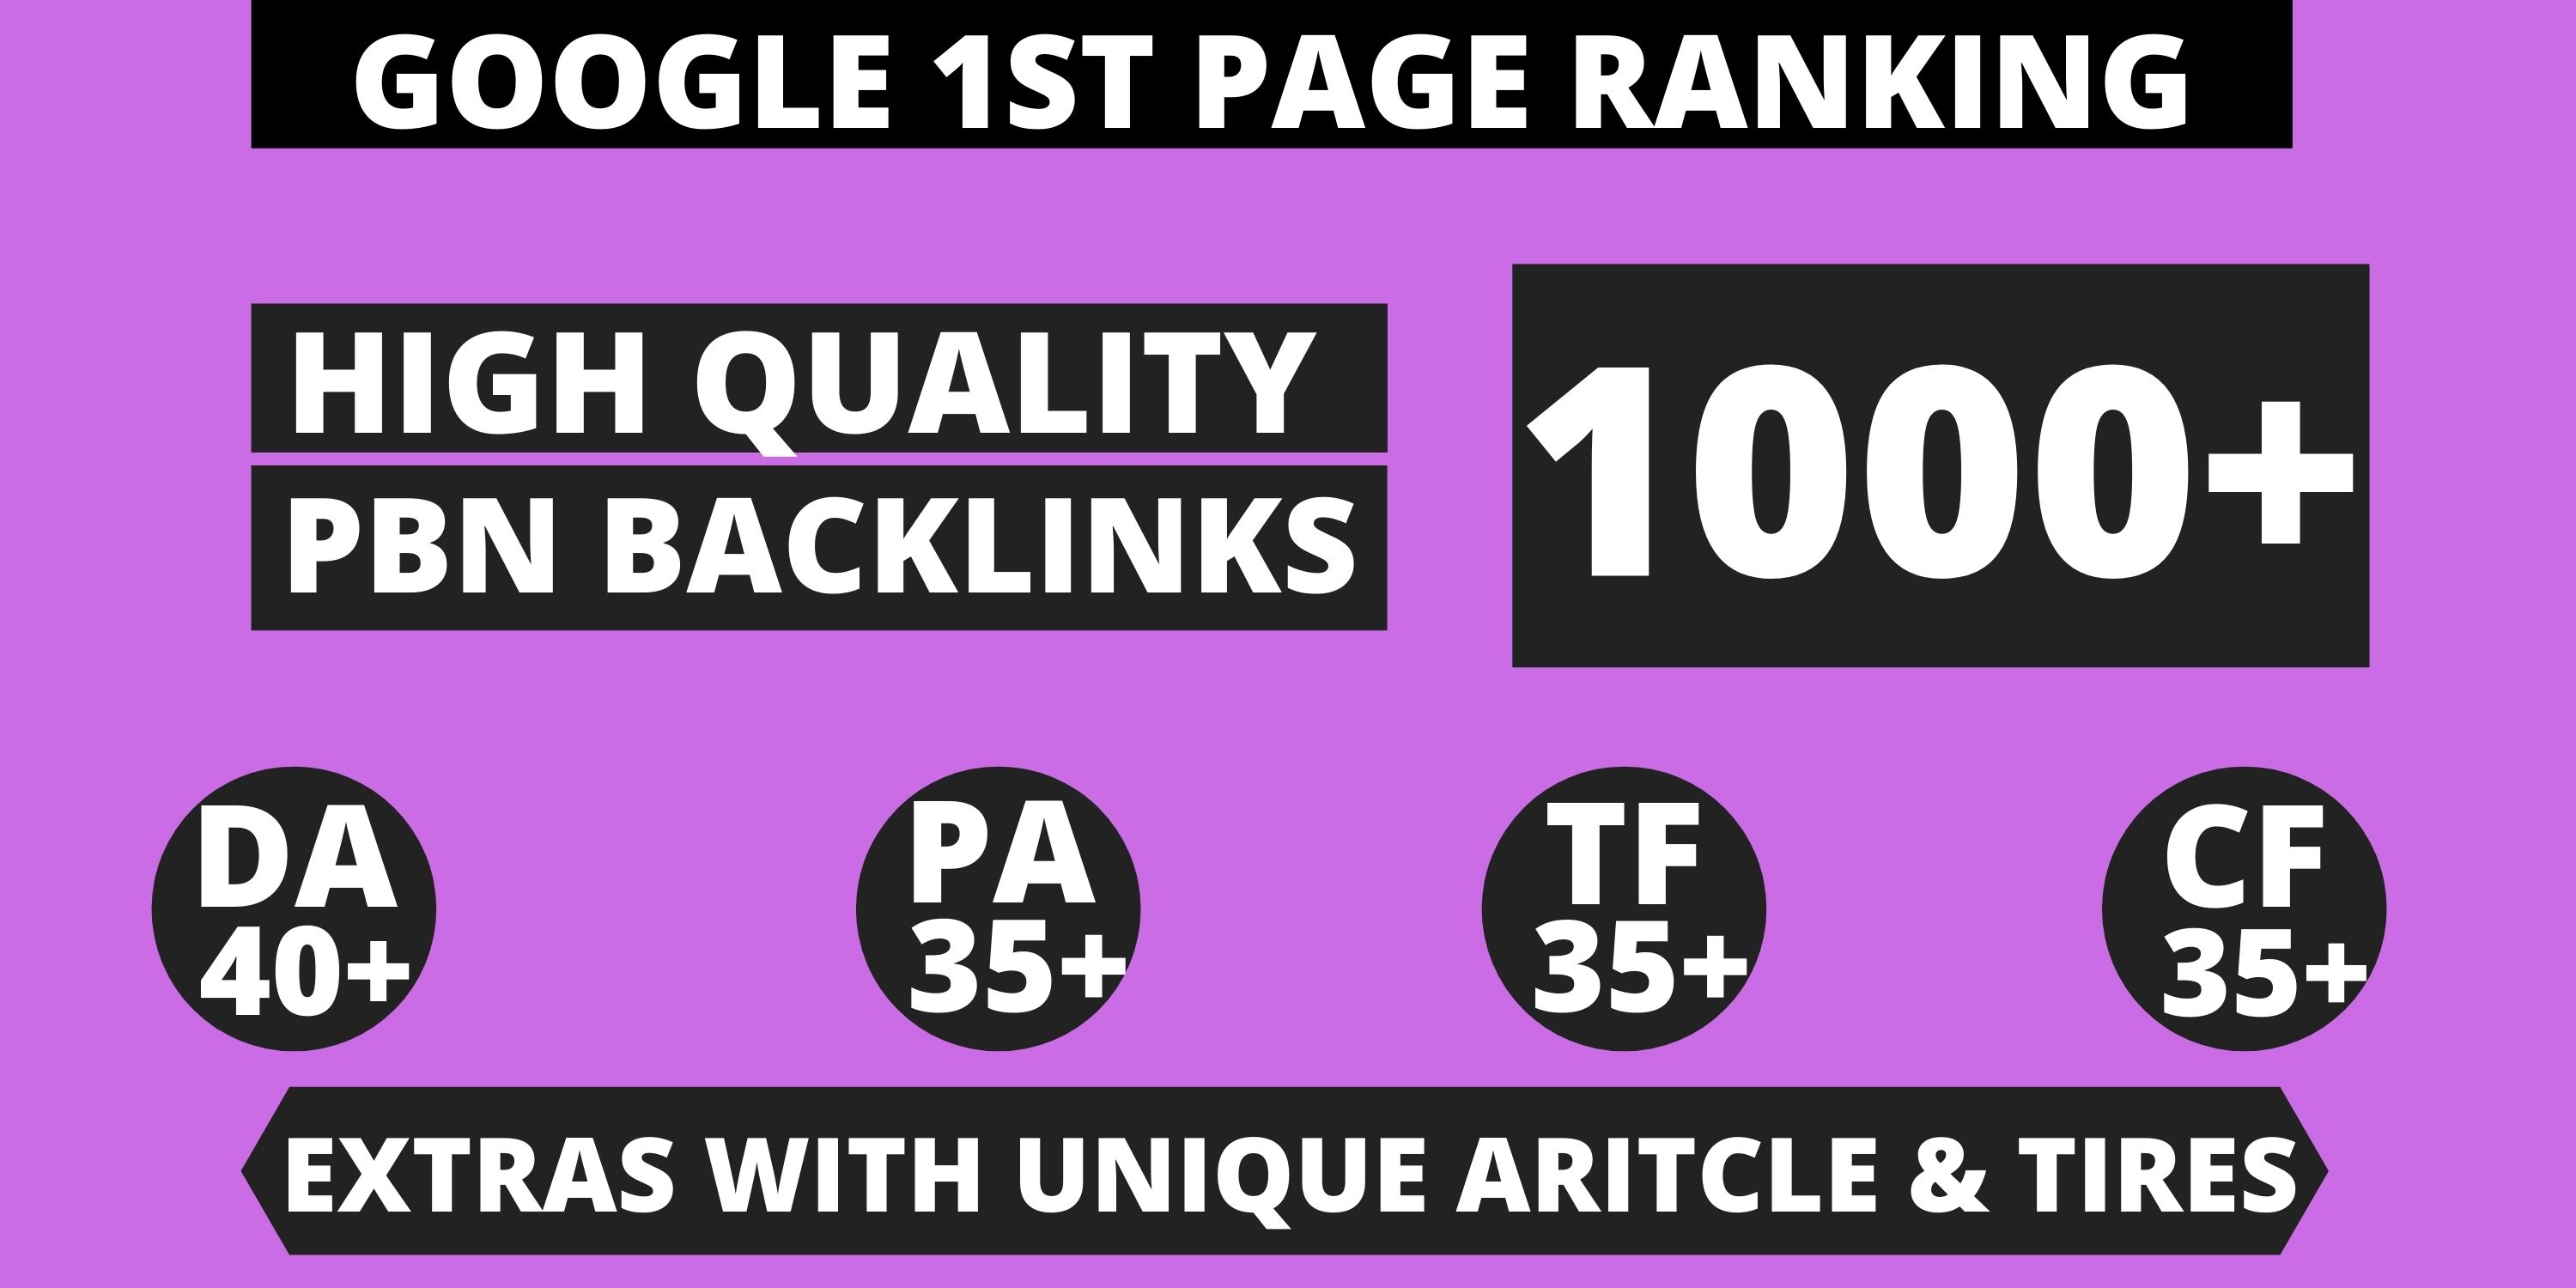 1000 web2.0 Backlinks Manually High Rank Your Website on Google